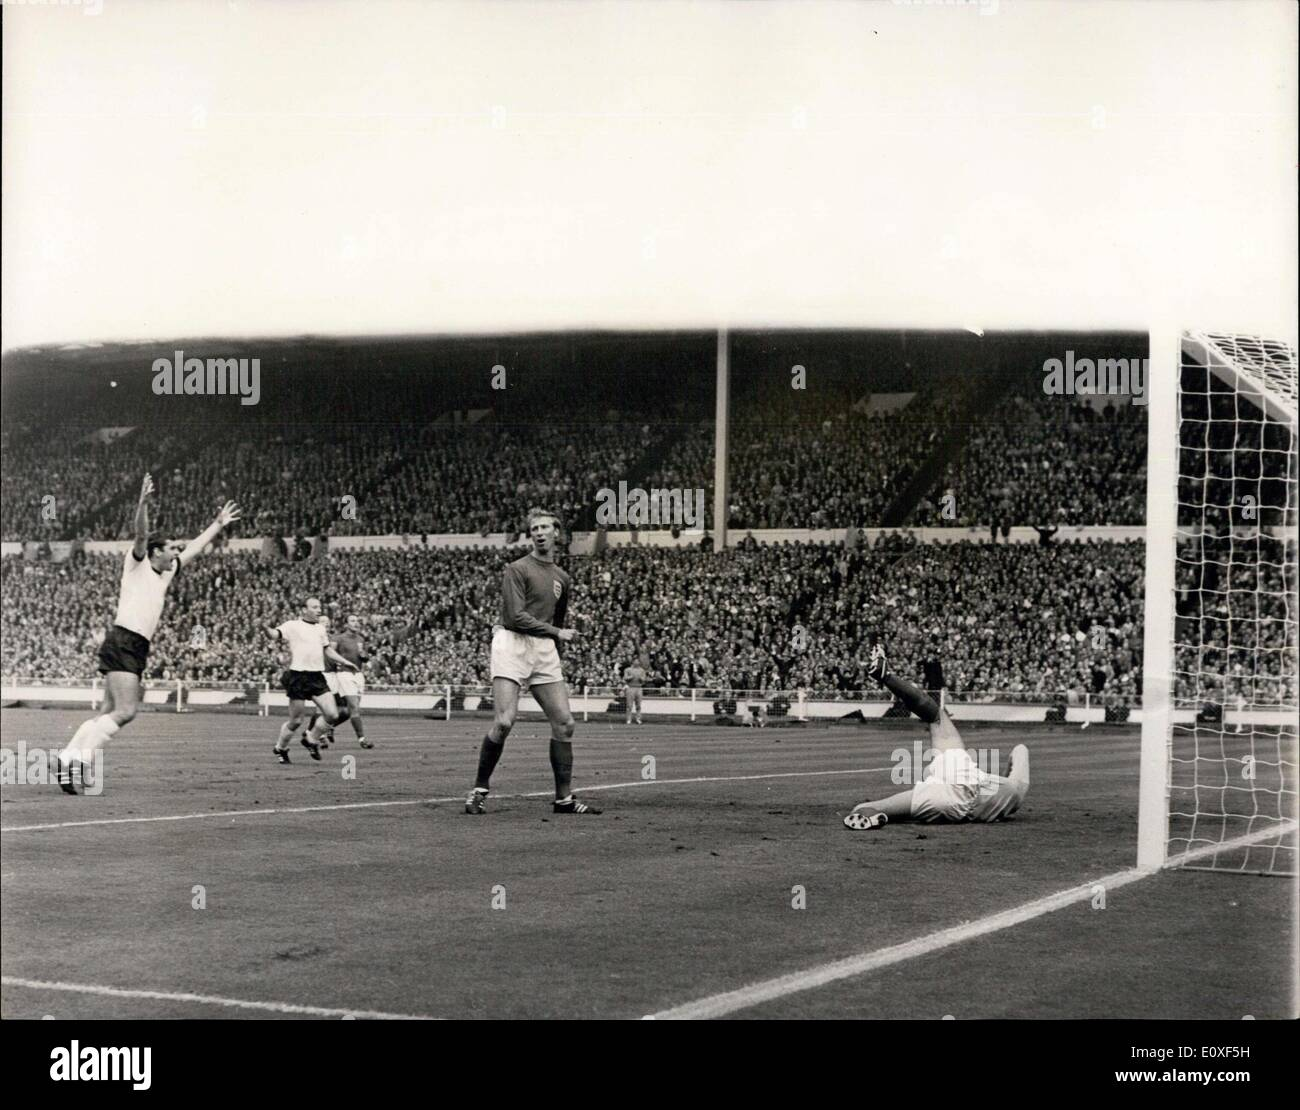 Jul. 30, 1966 - World Cup Football ? England v. West Germany World Cup Final at Wembley. Photo Shows: Haller of West Germany beats England goalkeeper Gordon Banks to score Germany?s first goal. - Stock Image